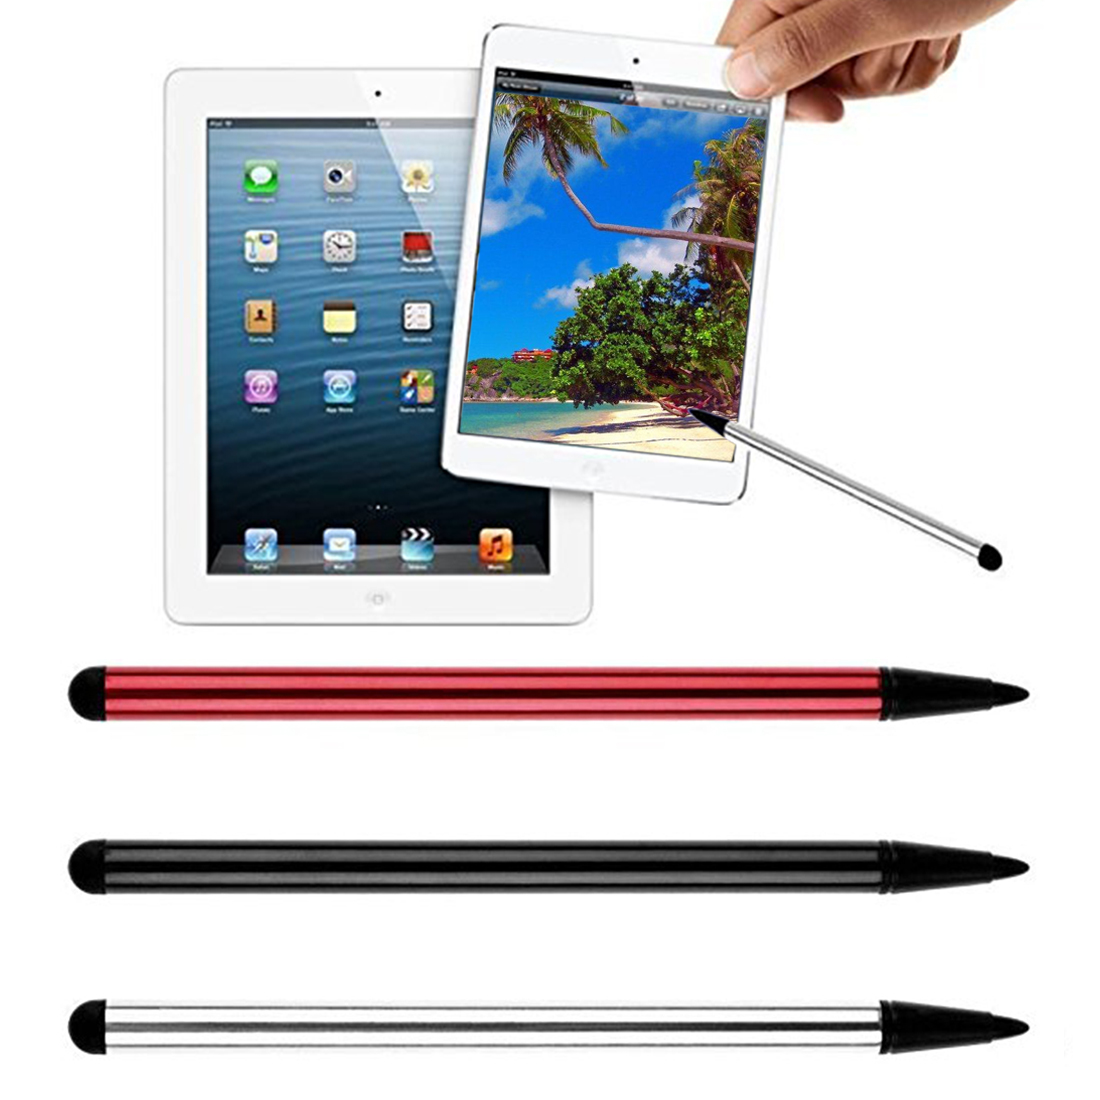 Universal Stylus pen Capacitive Screen Resistive Touch Screen Stylus Pen For Mobile Phone Tablet PC Pocket PC capacitive pen touch screen drawing pen stylus with conductive touch sucker microfiber touch head for tablet pc smart phone